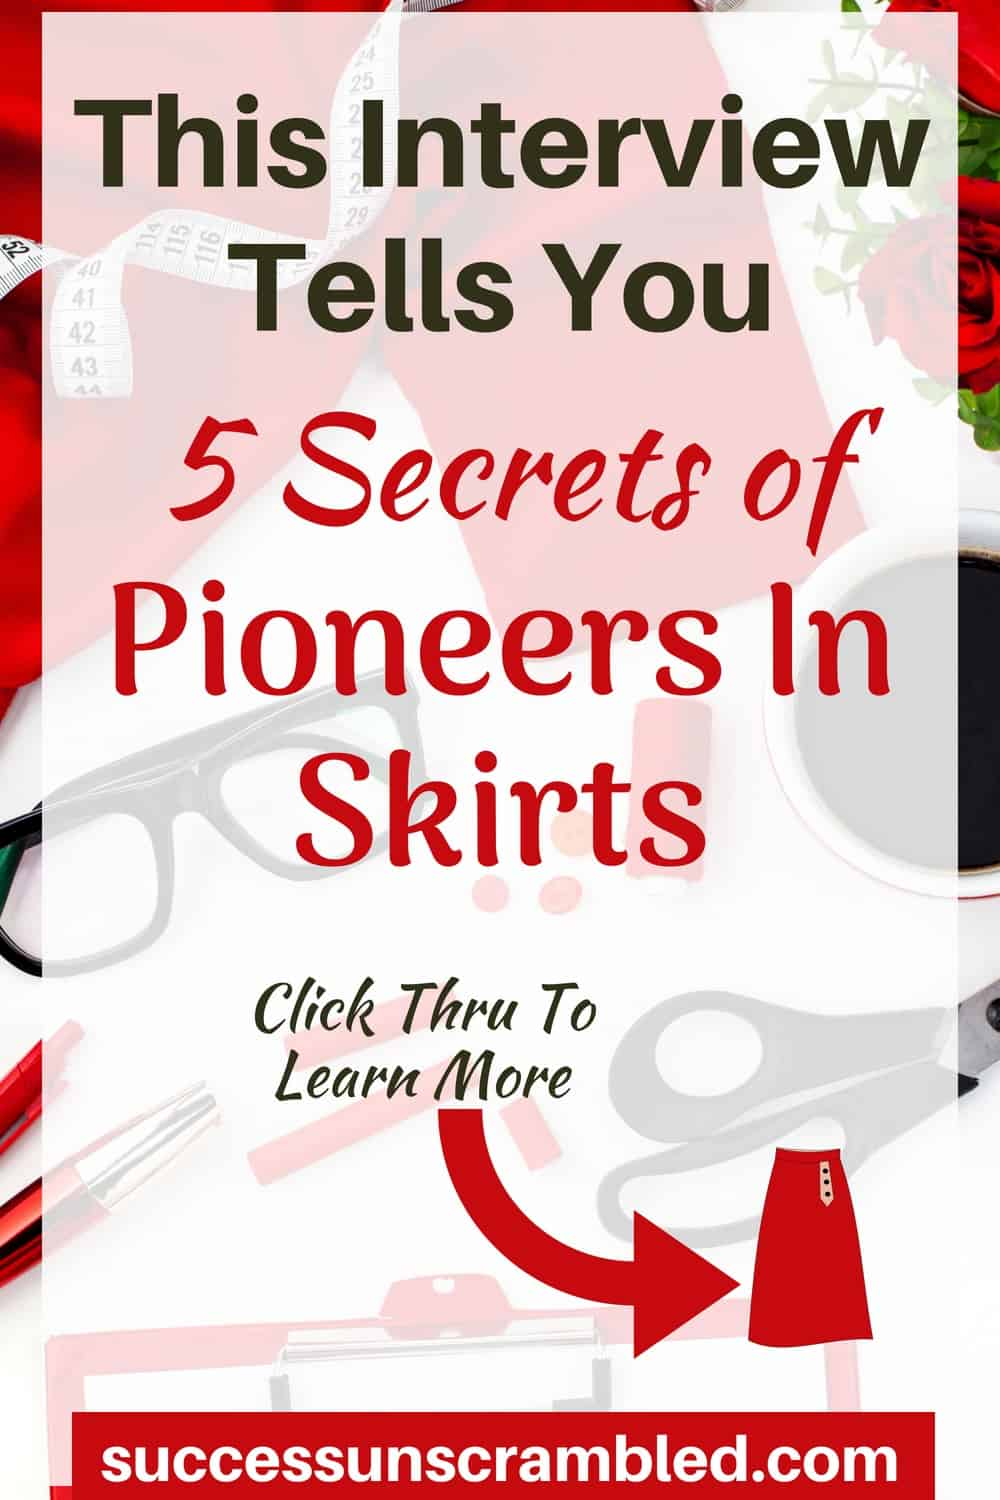 This InterviewTells You 5 Secrets of Pioneers In Skirts